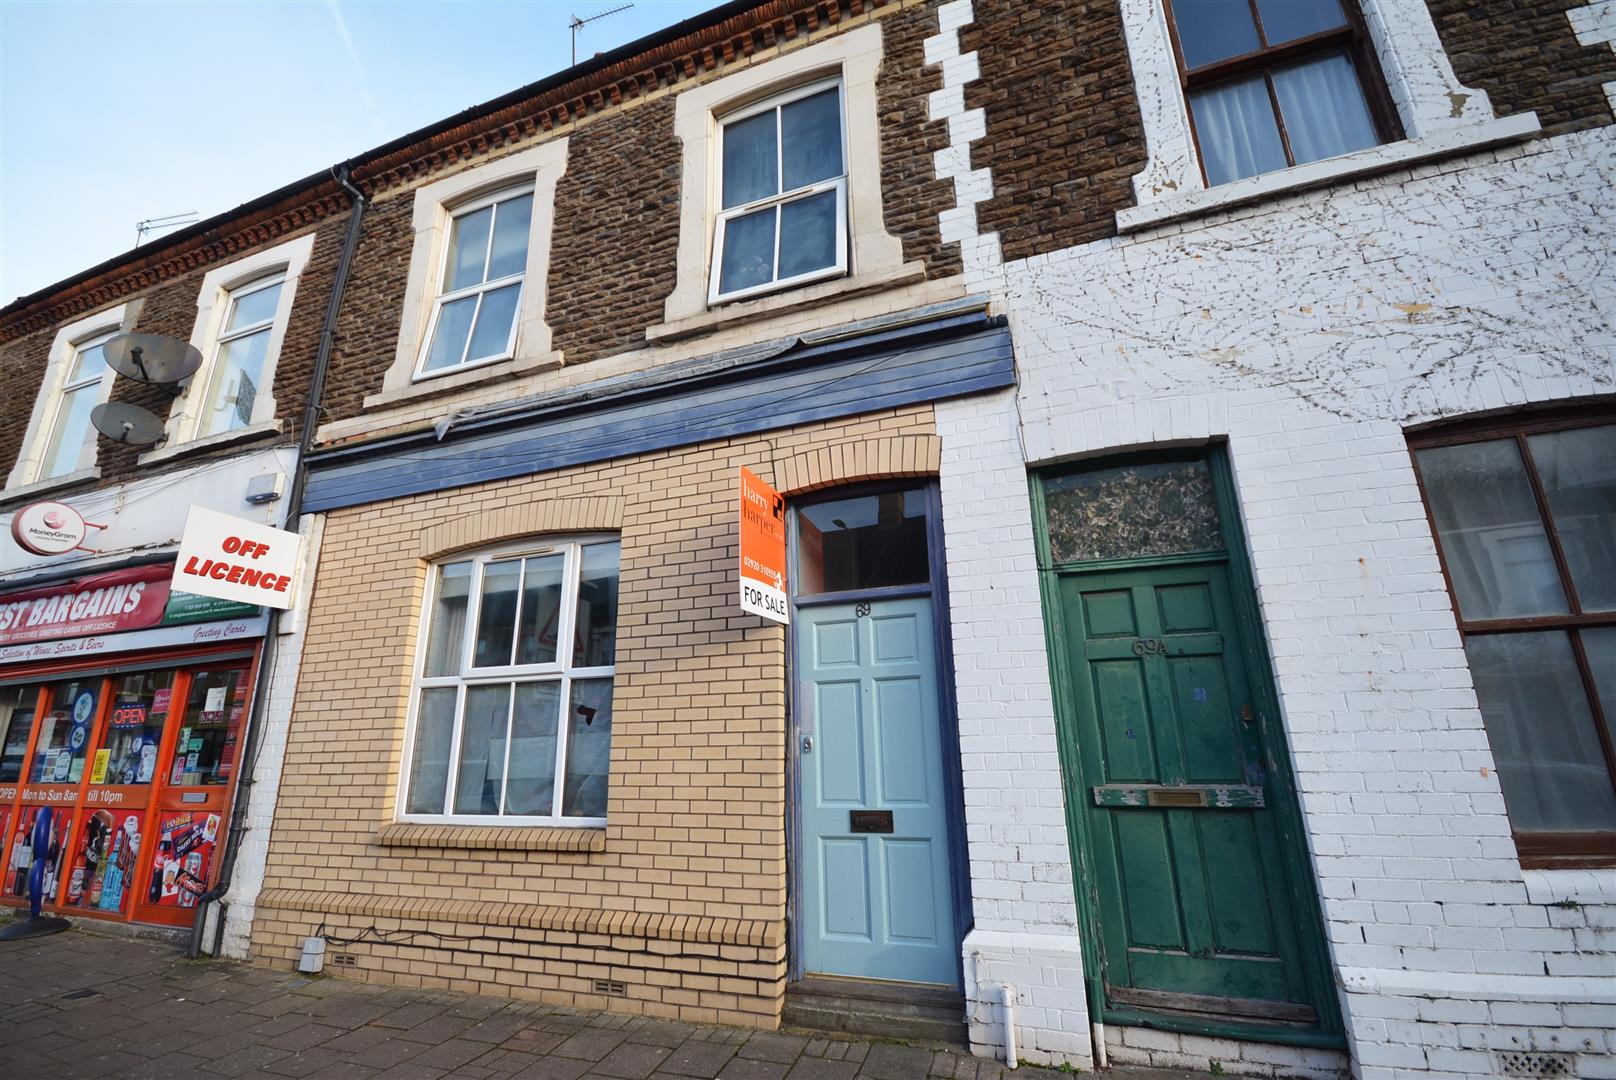 5 bed terraced house for sale in Splott Road, Cardiff - Property Image 1